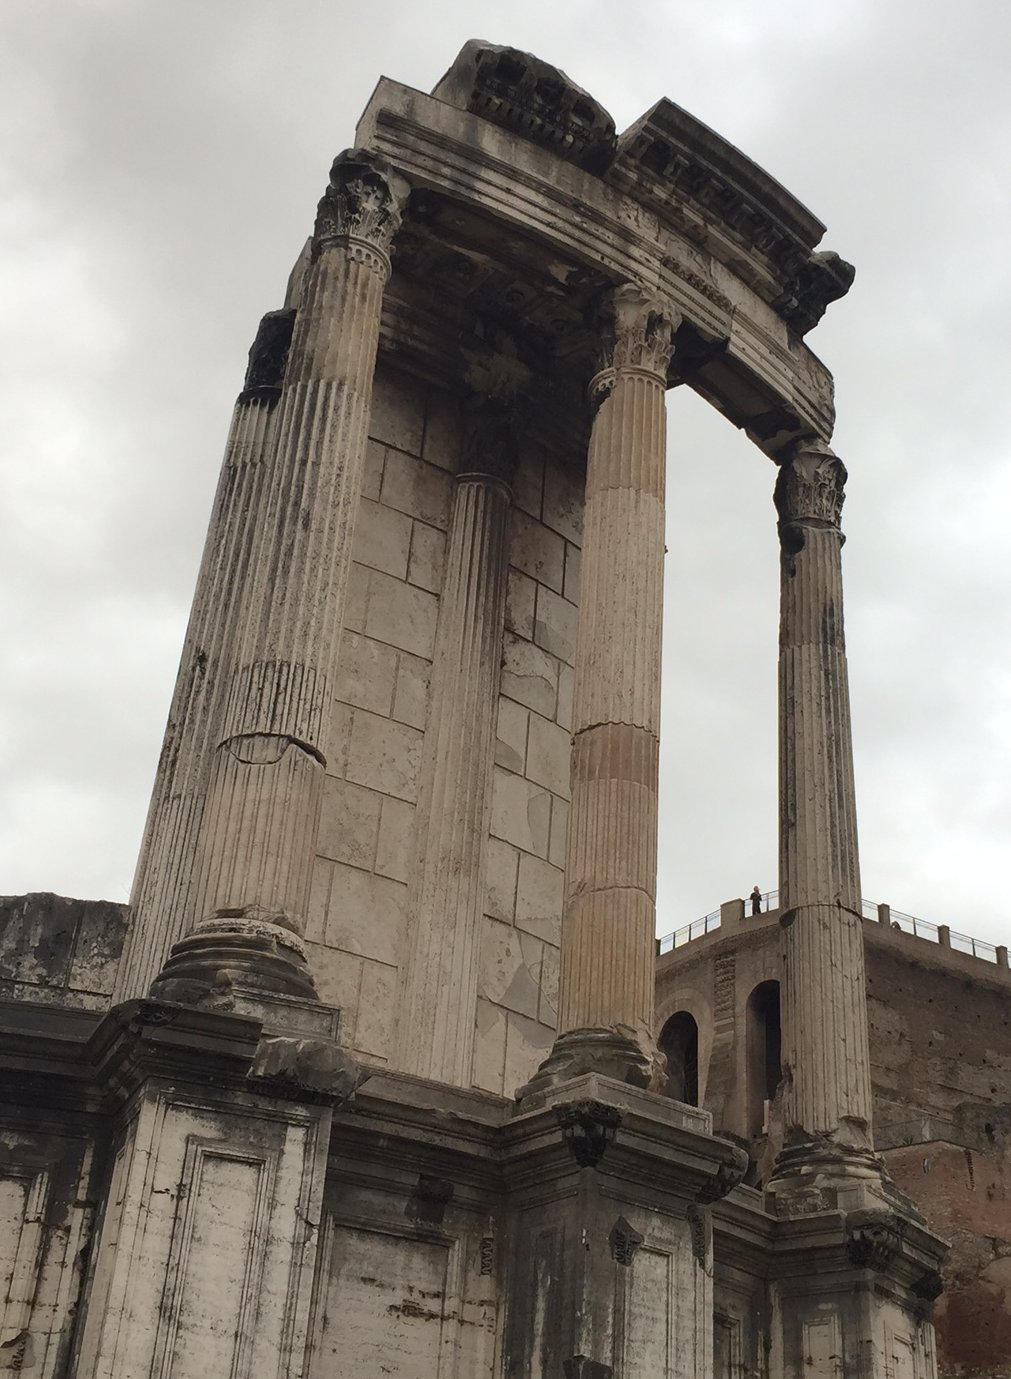 the remains of the Temple of Vesta, on the Forum (also where, PS, the freaking vestal virgins kept the flame alive. I do believe being a vestal virgin guaranteed women a better life than they'd have had otherwise, BUT being a vestal virgin couldn't have been much fun.)